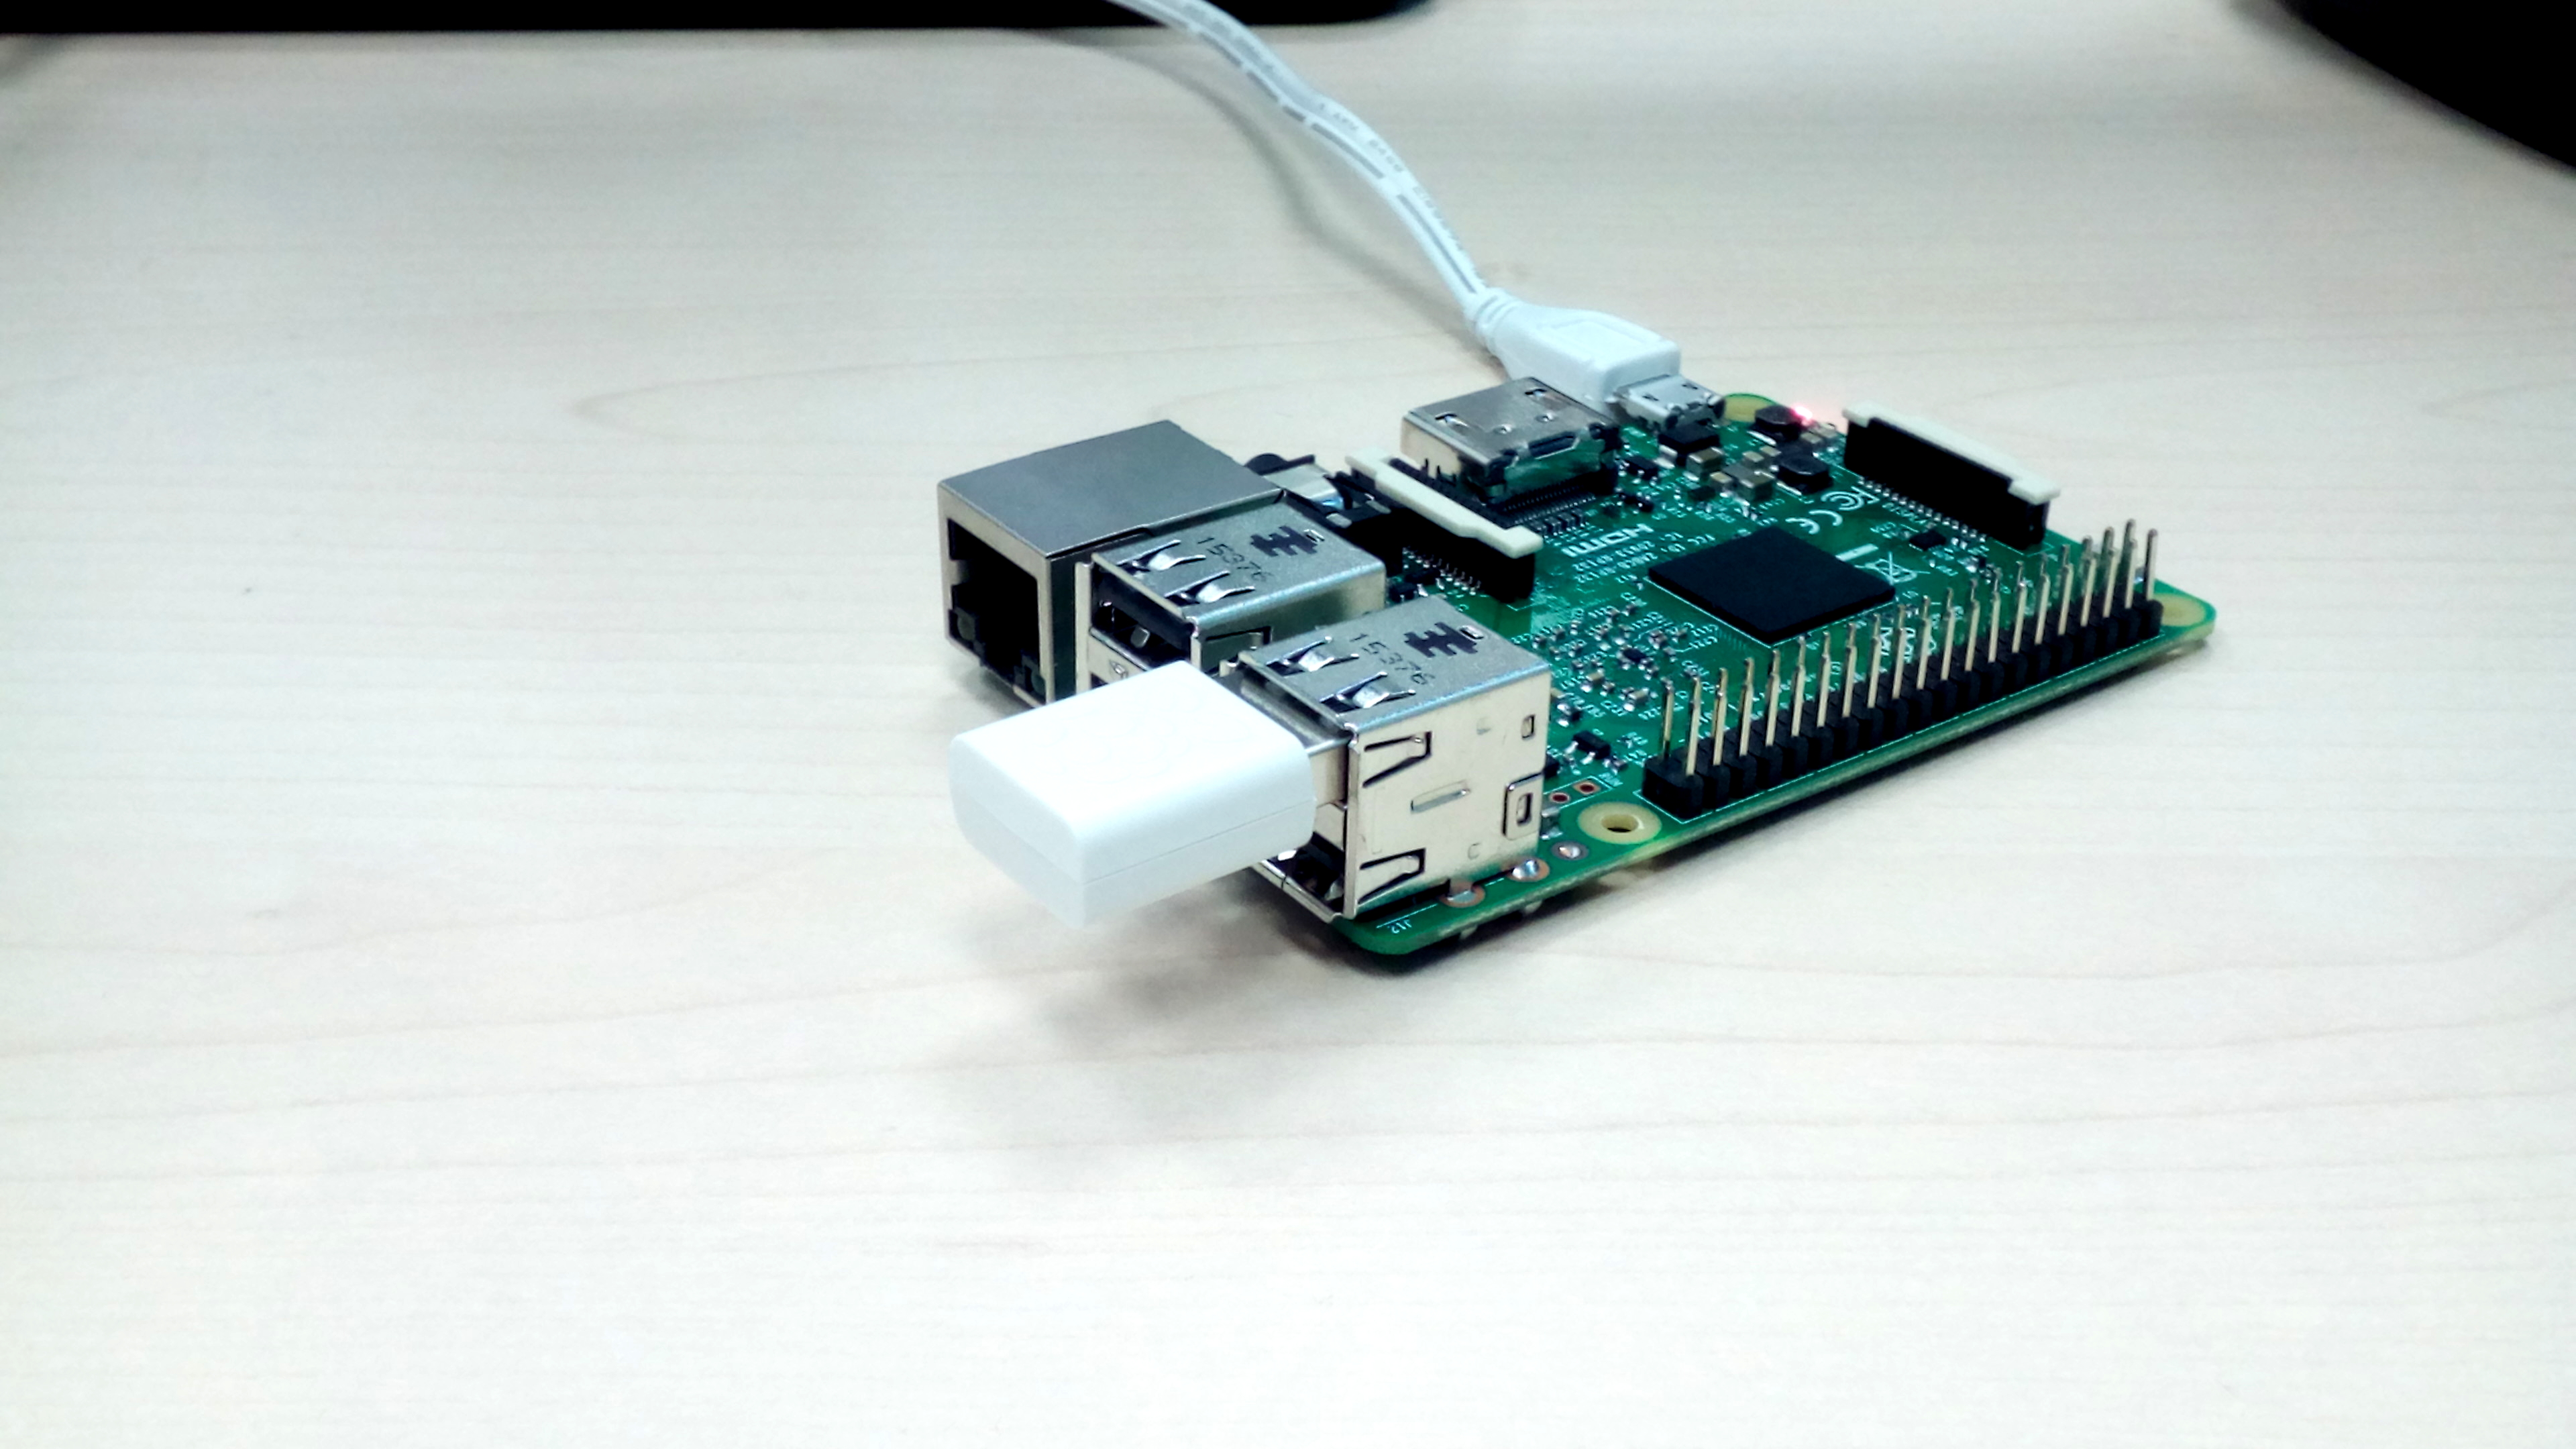 Connect your Pi to the internet